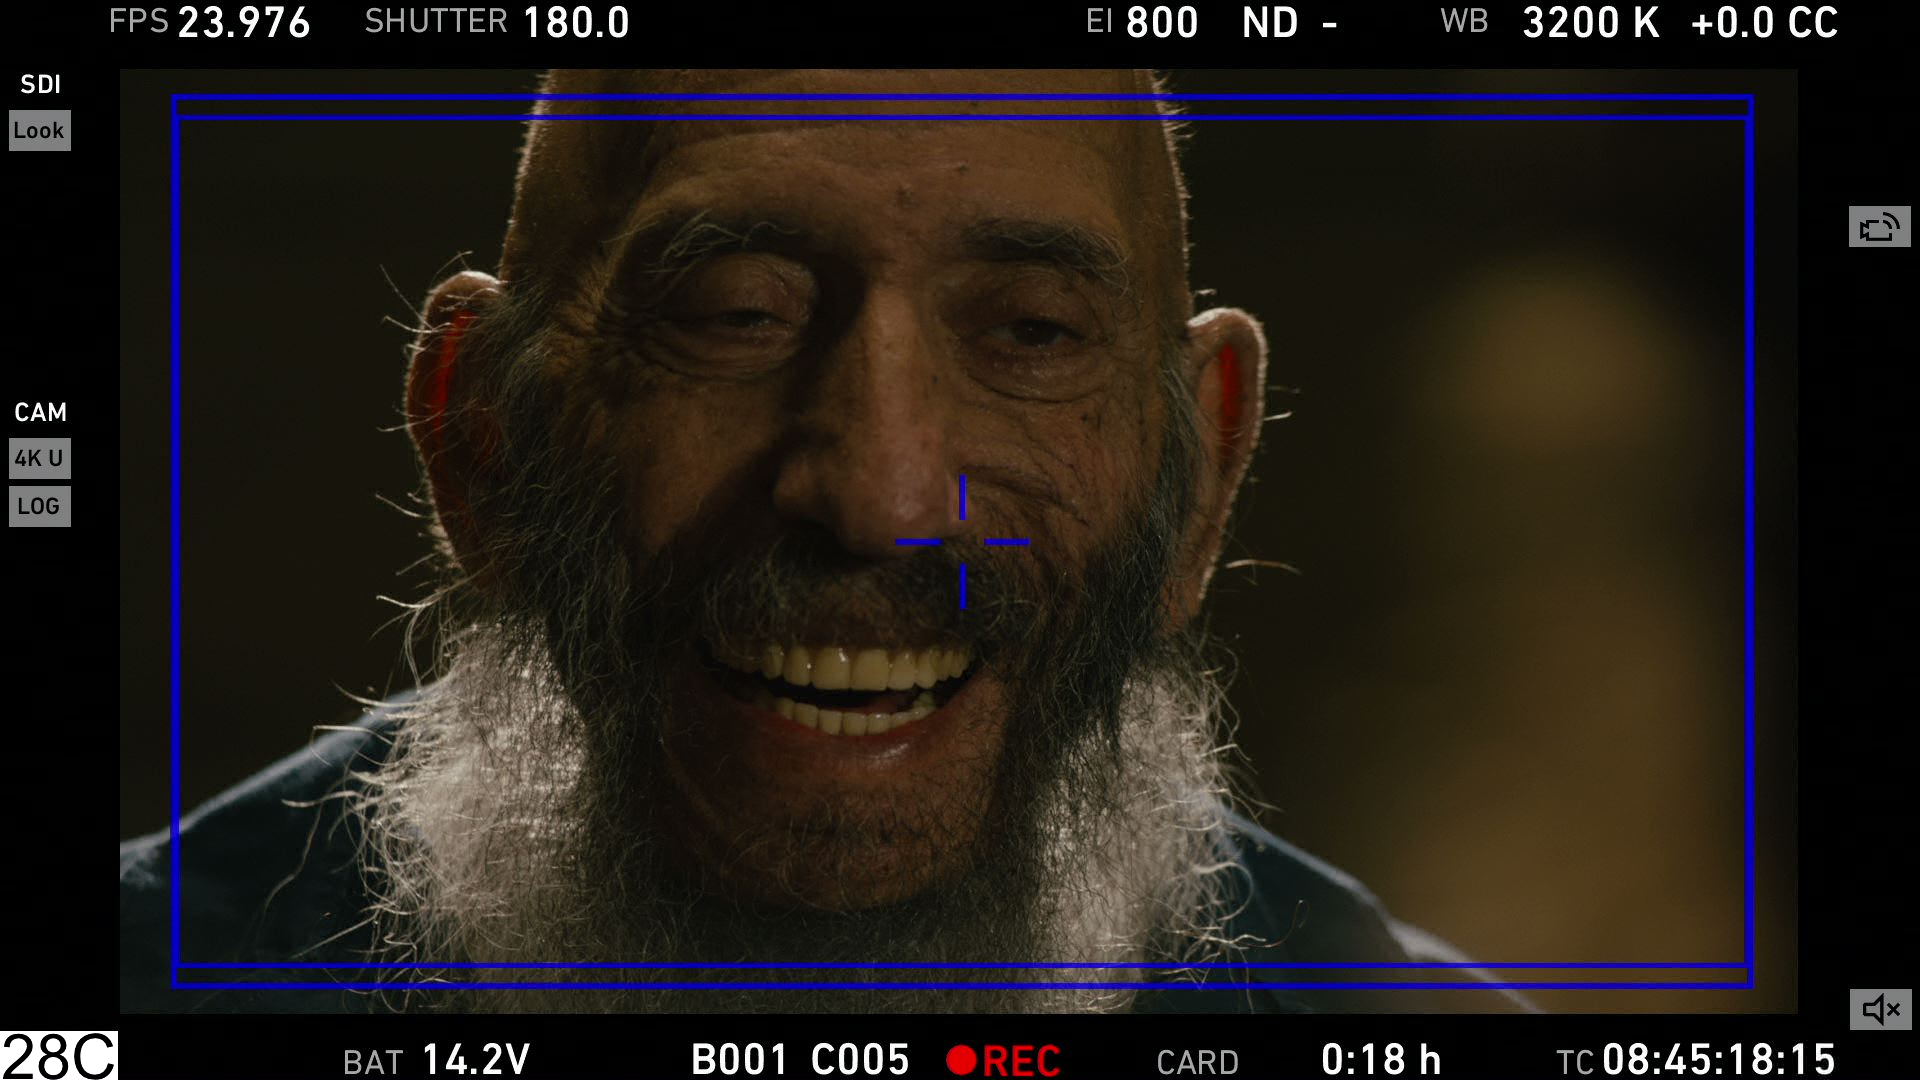 Rz Shares Never Before Seen Photos With Sid Haig Share Your